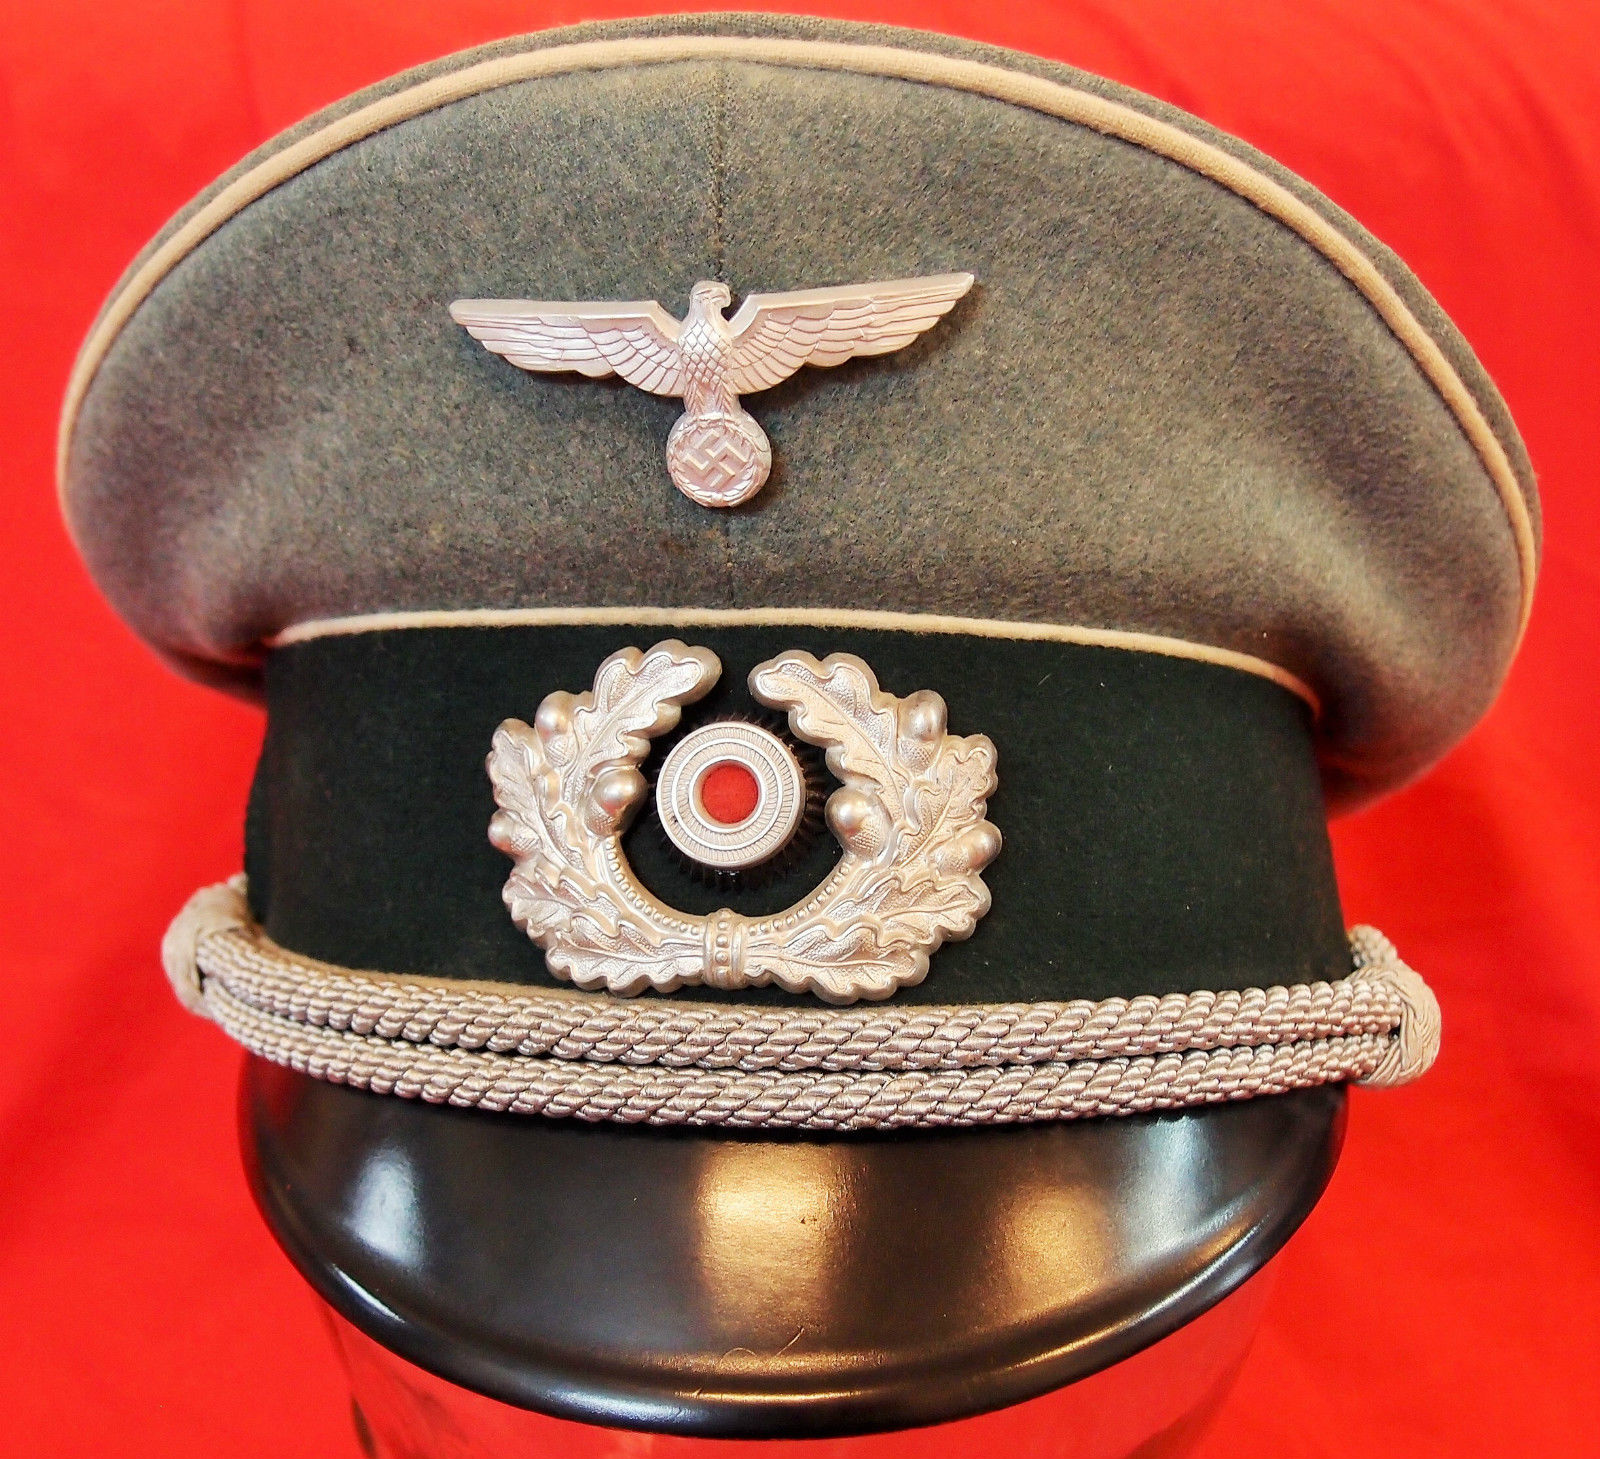 WW2 NAZI GERMANY ARMY INFANTRY OFFICER PEAKED CAP HAT – JB Military ... 3c64ded2d31